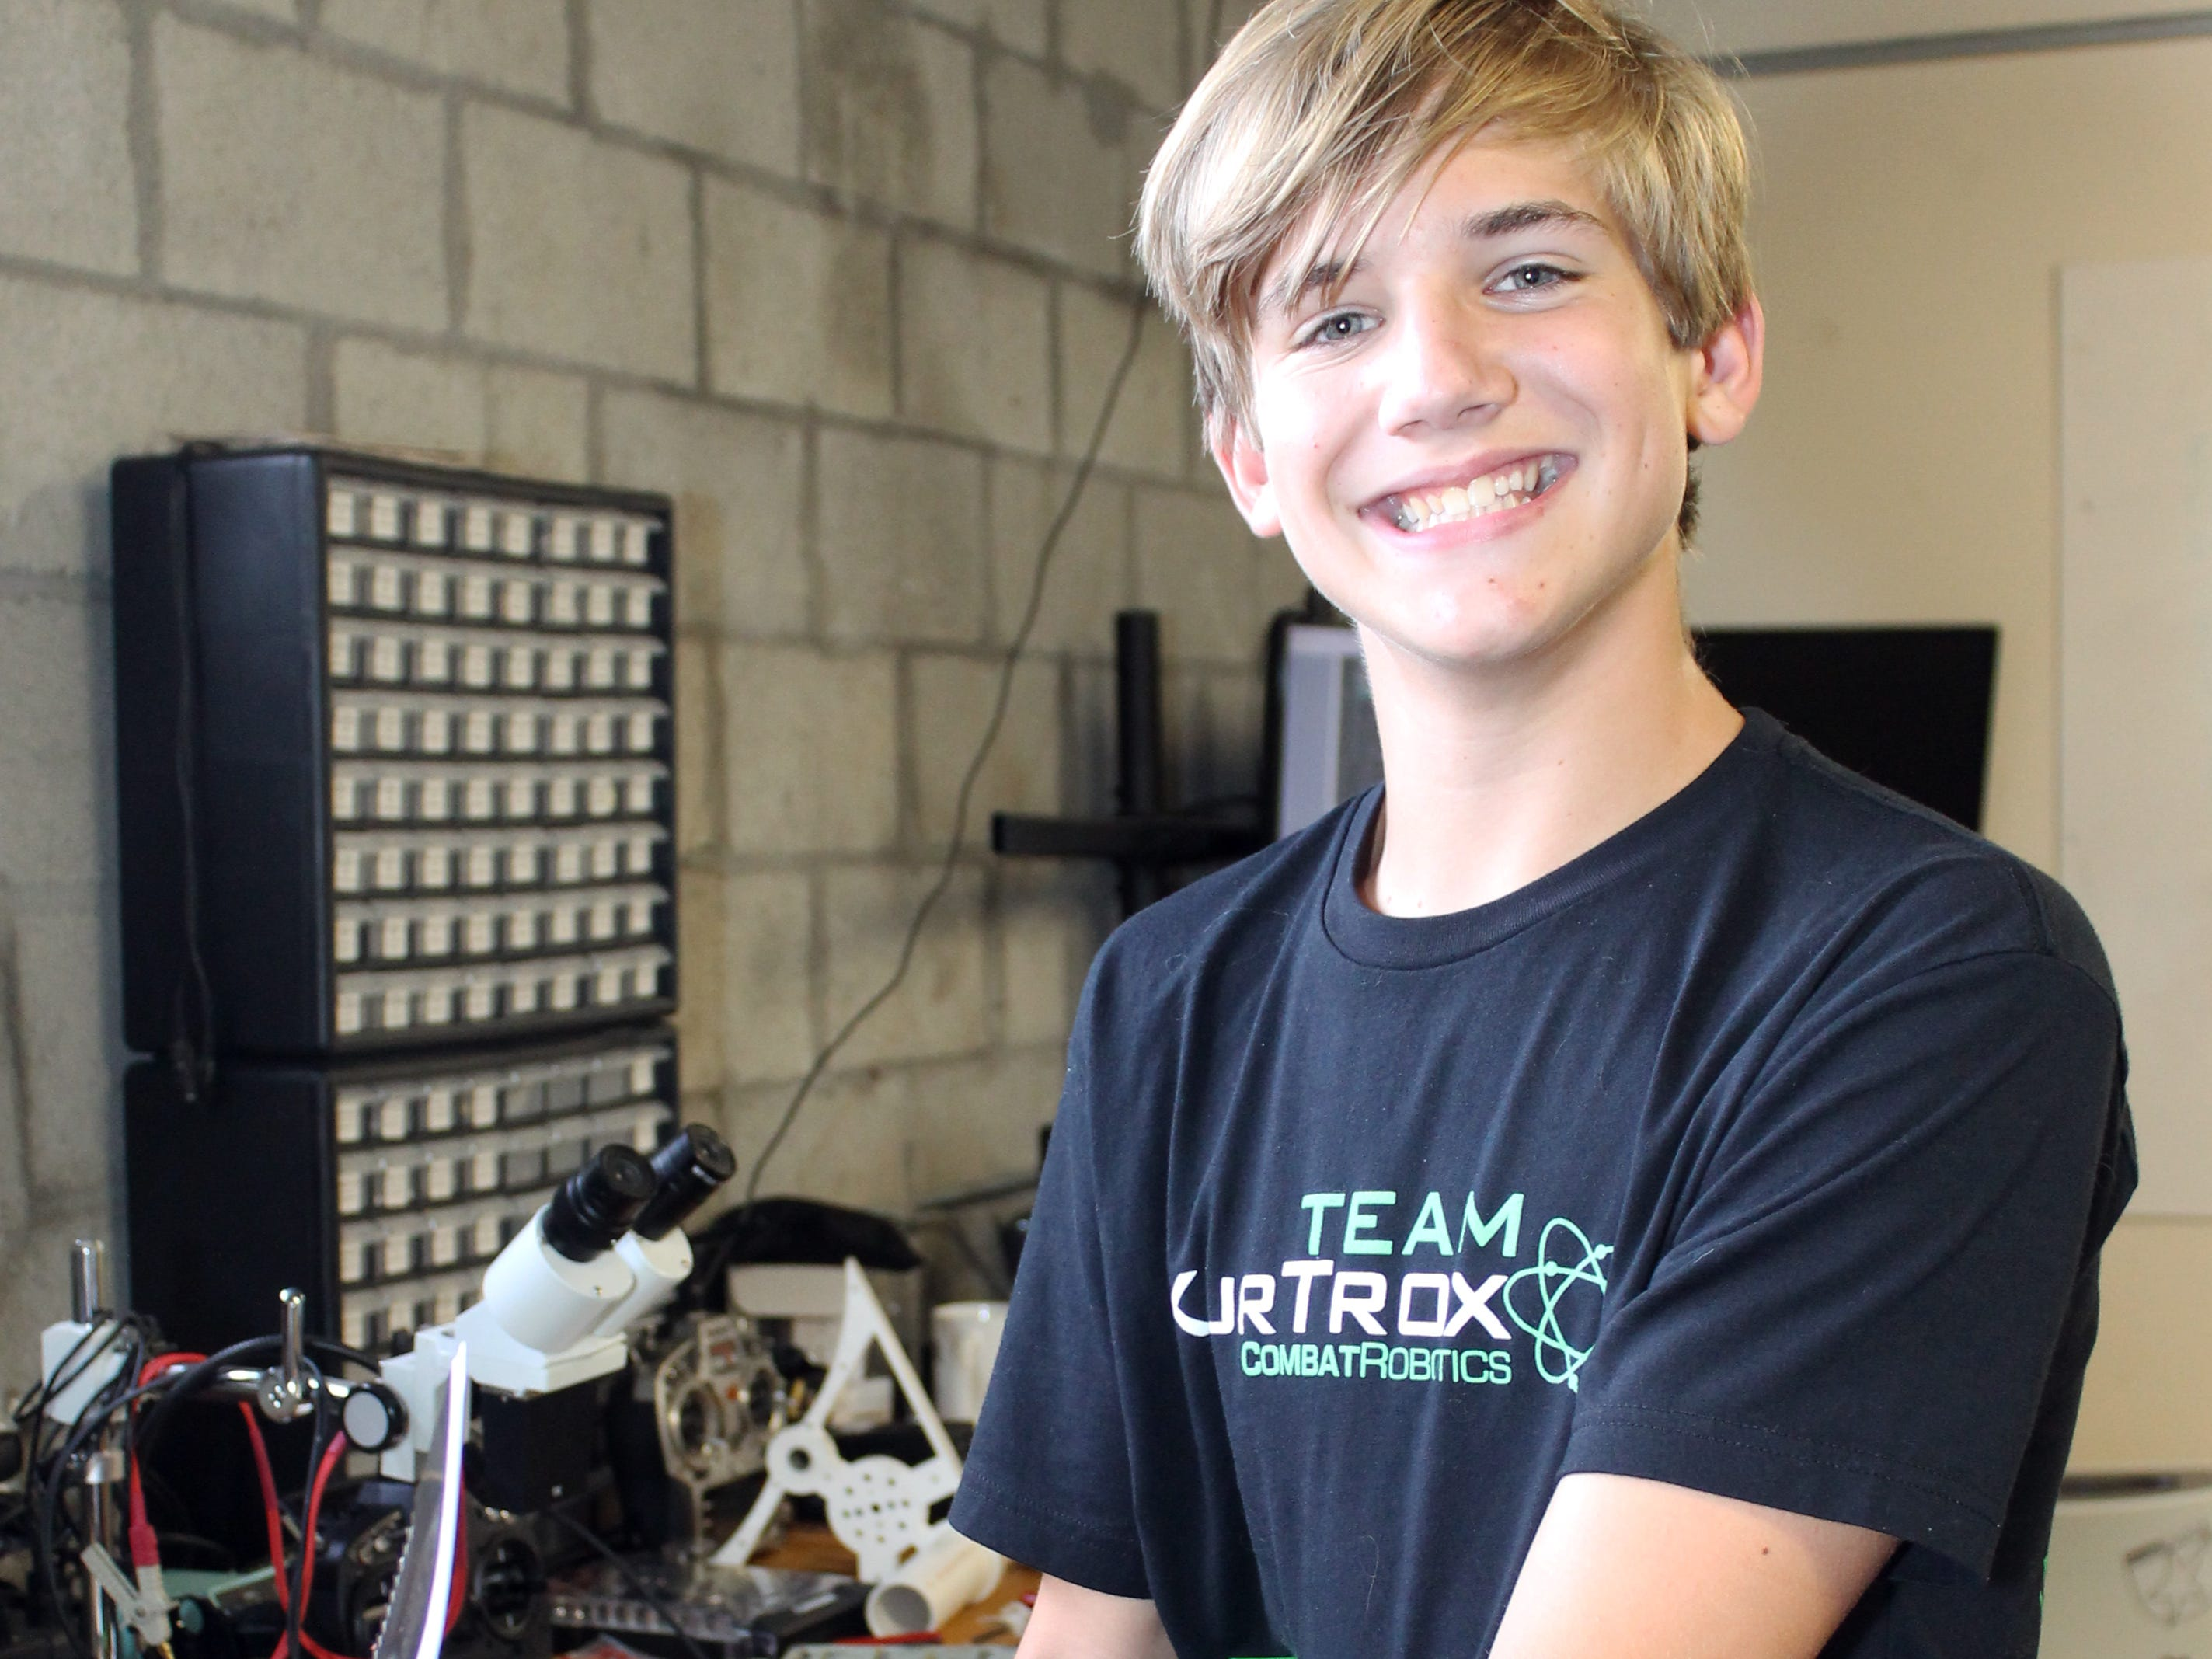 Grant Pitcher with one of his own robot creations at KurTrox Electronics Engineering and Treasure Coast Makerspace.